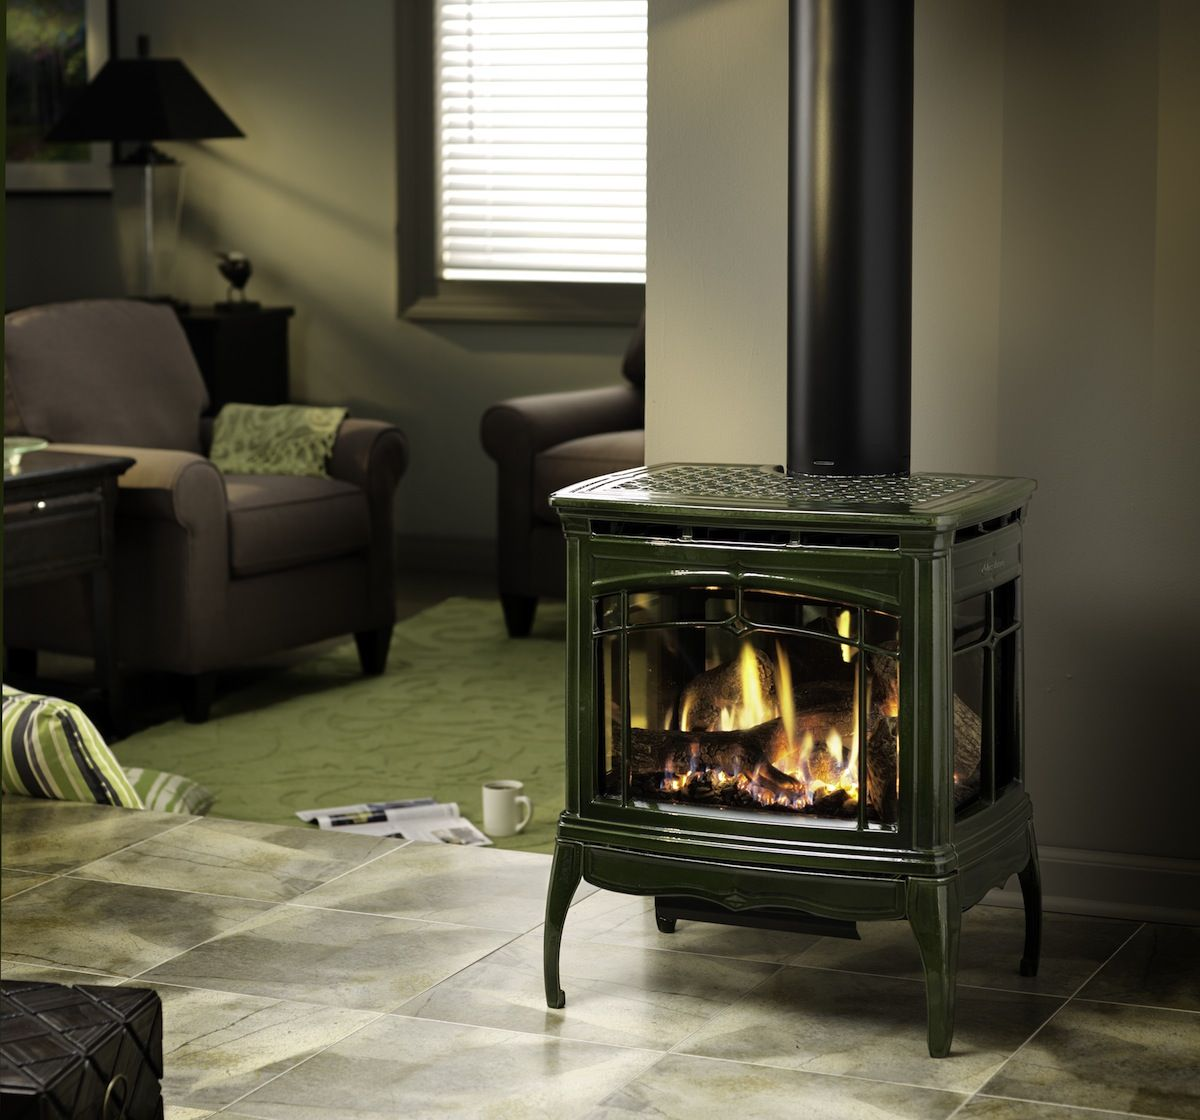 Gas Jet Fireplace Google Search Gas Stove Wood Gas Stove